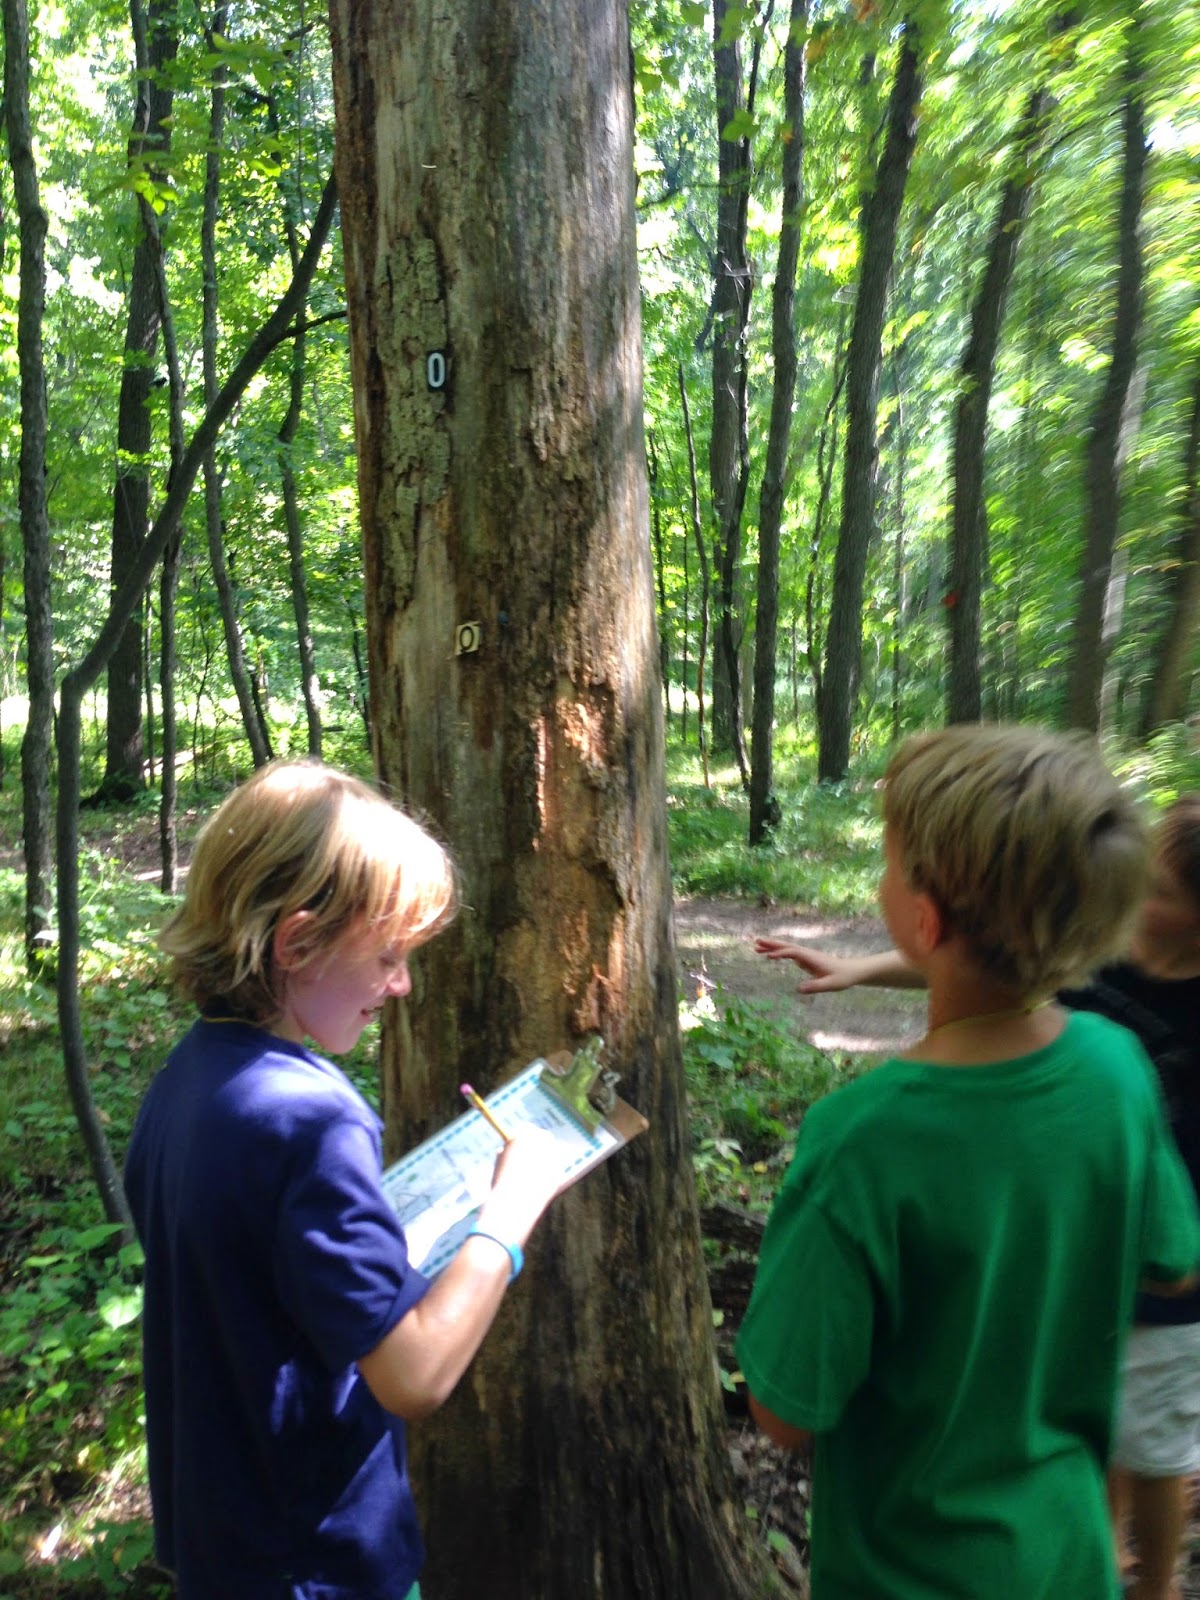 this sent us into the woods with a map and compasses in search of stations and clues